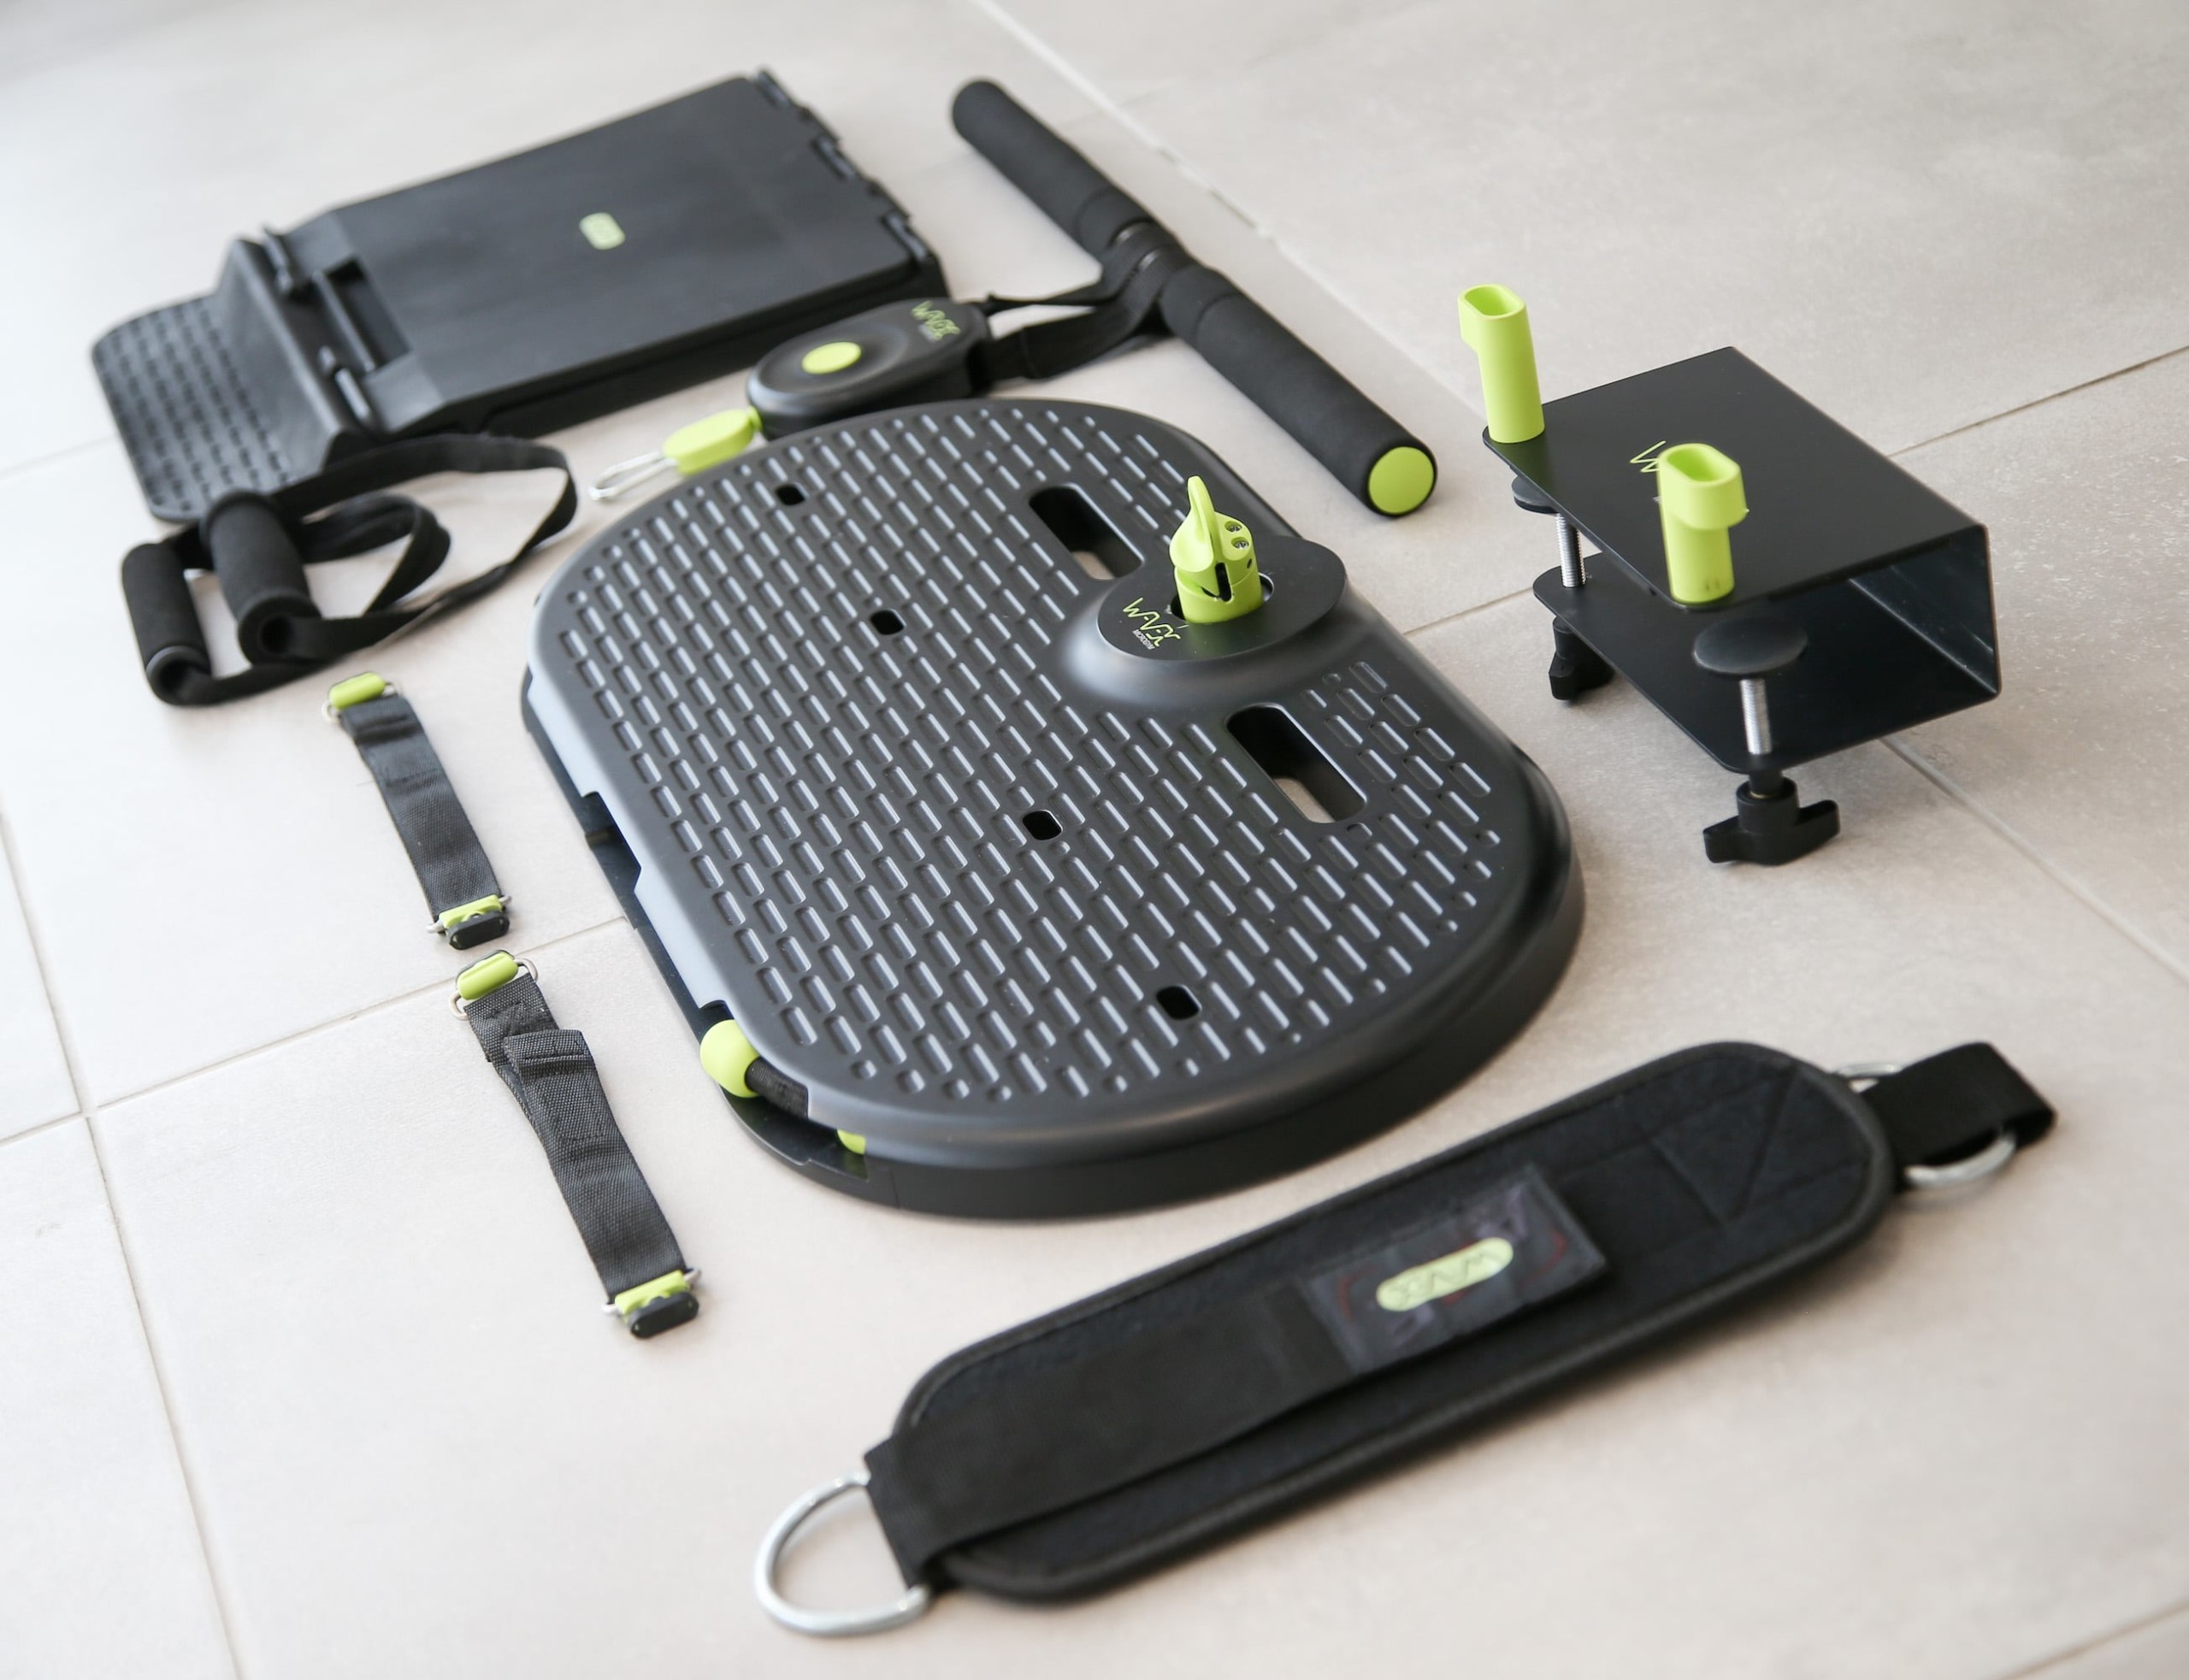 Microgym Portable Home Gym offers hundreds of workouts in one